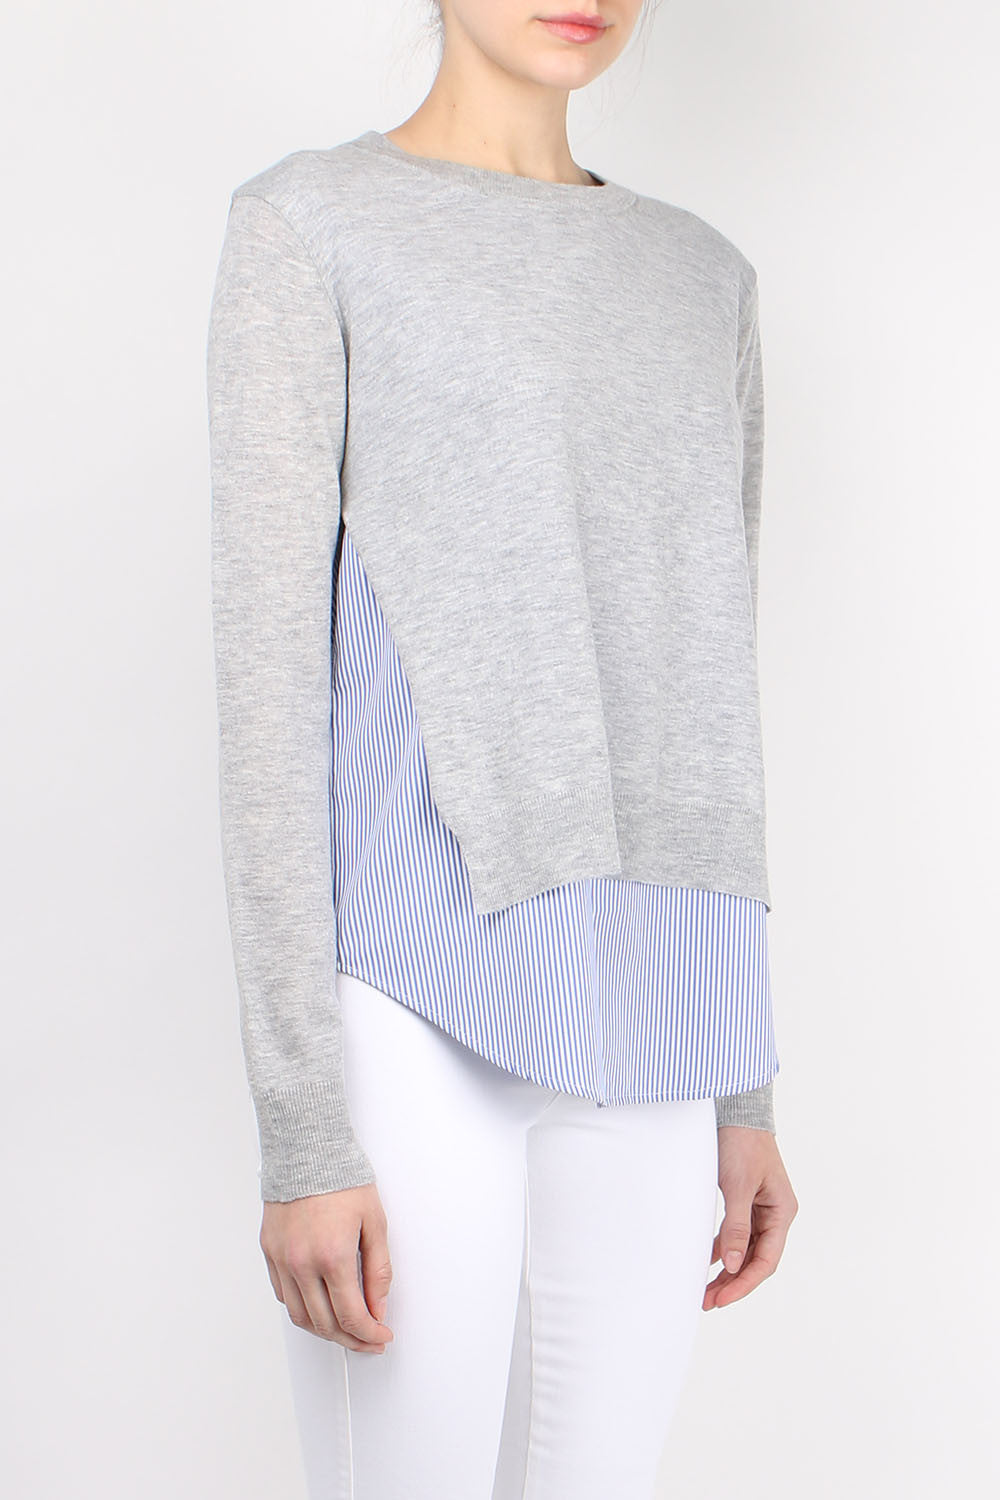 Chloe Stora Marcia Maille Pullover